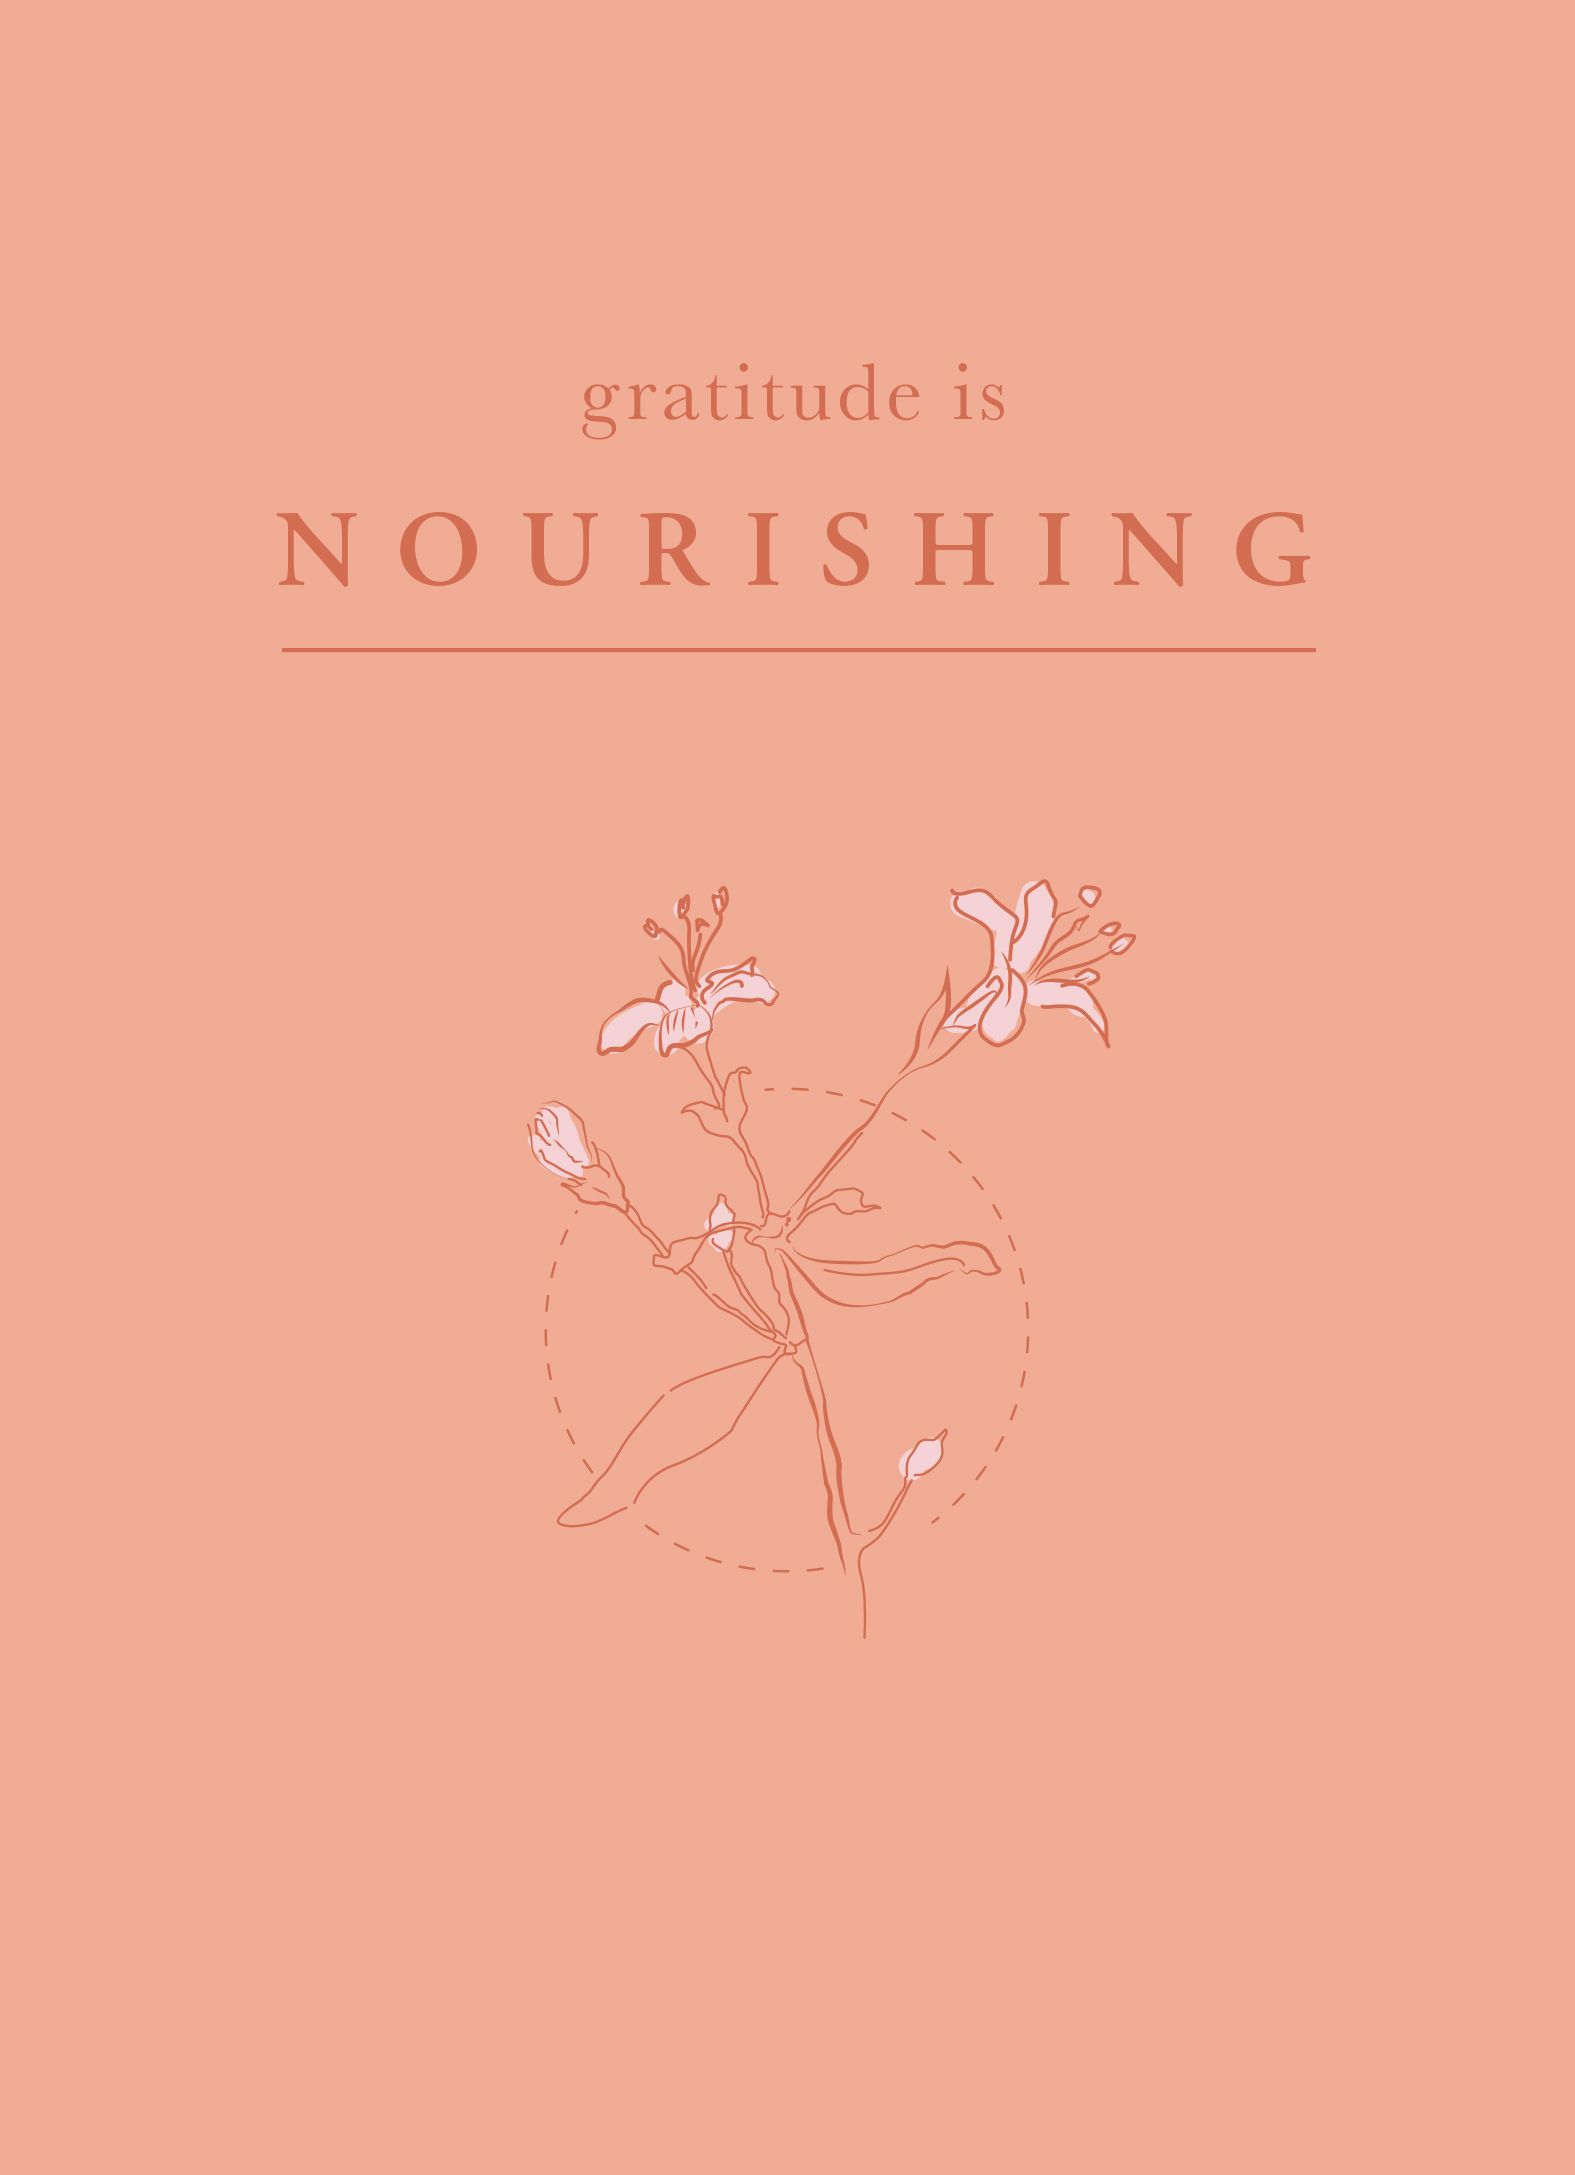 Gratitude is Nourishing | Of Note Stationers